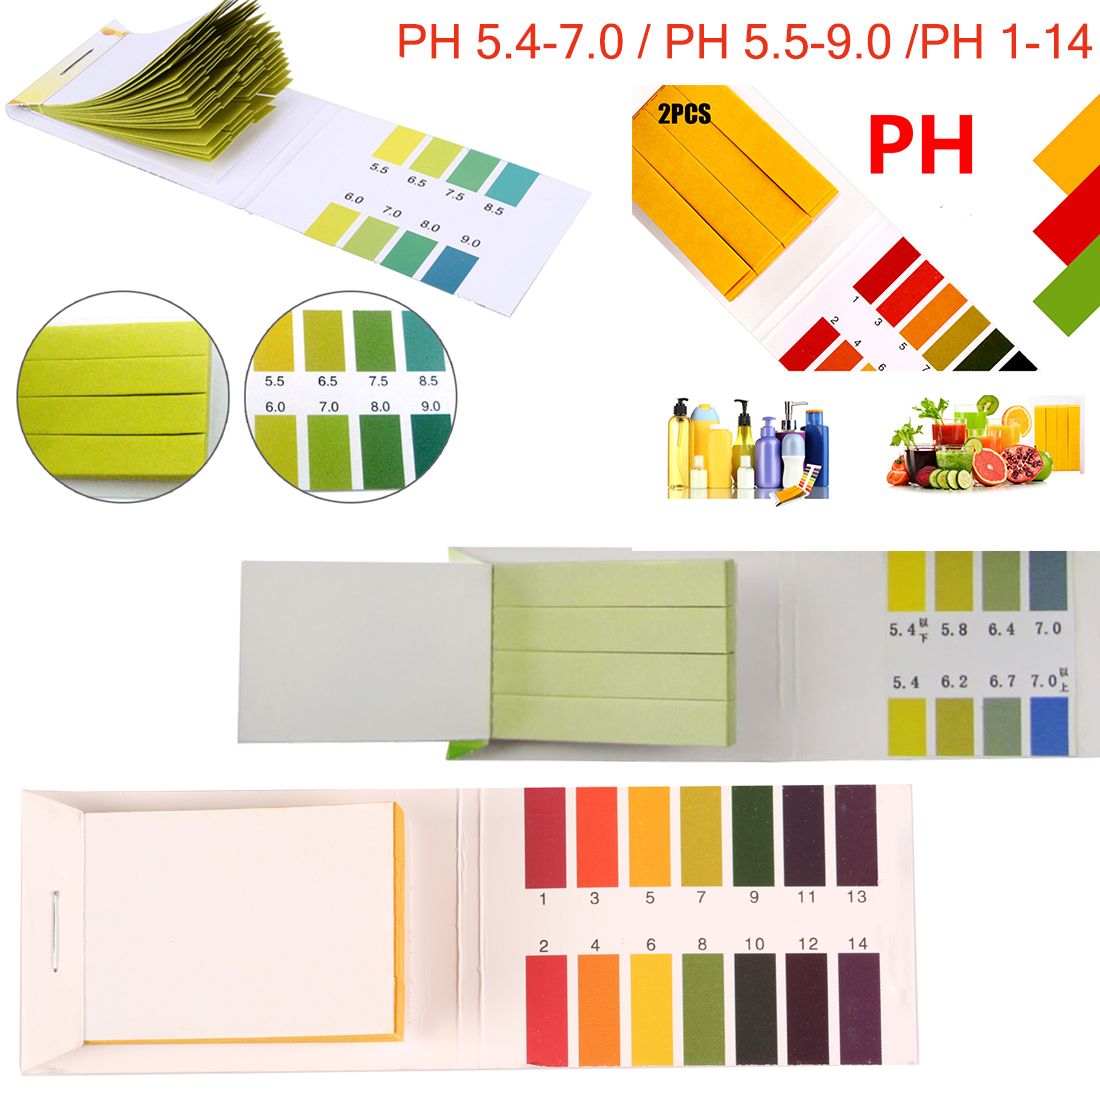 Alkaline Test Papers Strips Indicator Lab Supplies Litmus Testing Kit For Plant,Water 80 Strips PH 5.4-7.0,PH 5.5-9.0,PH 1 -14